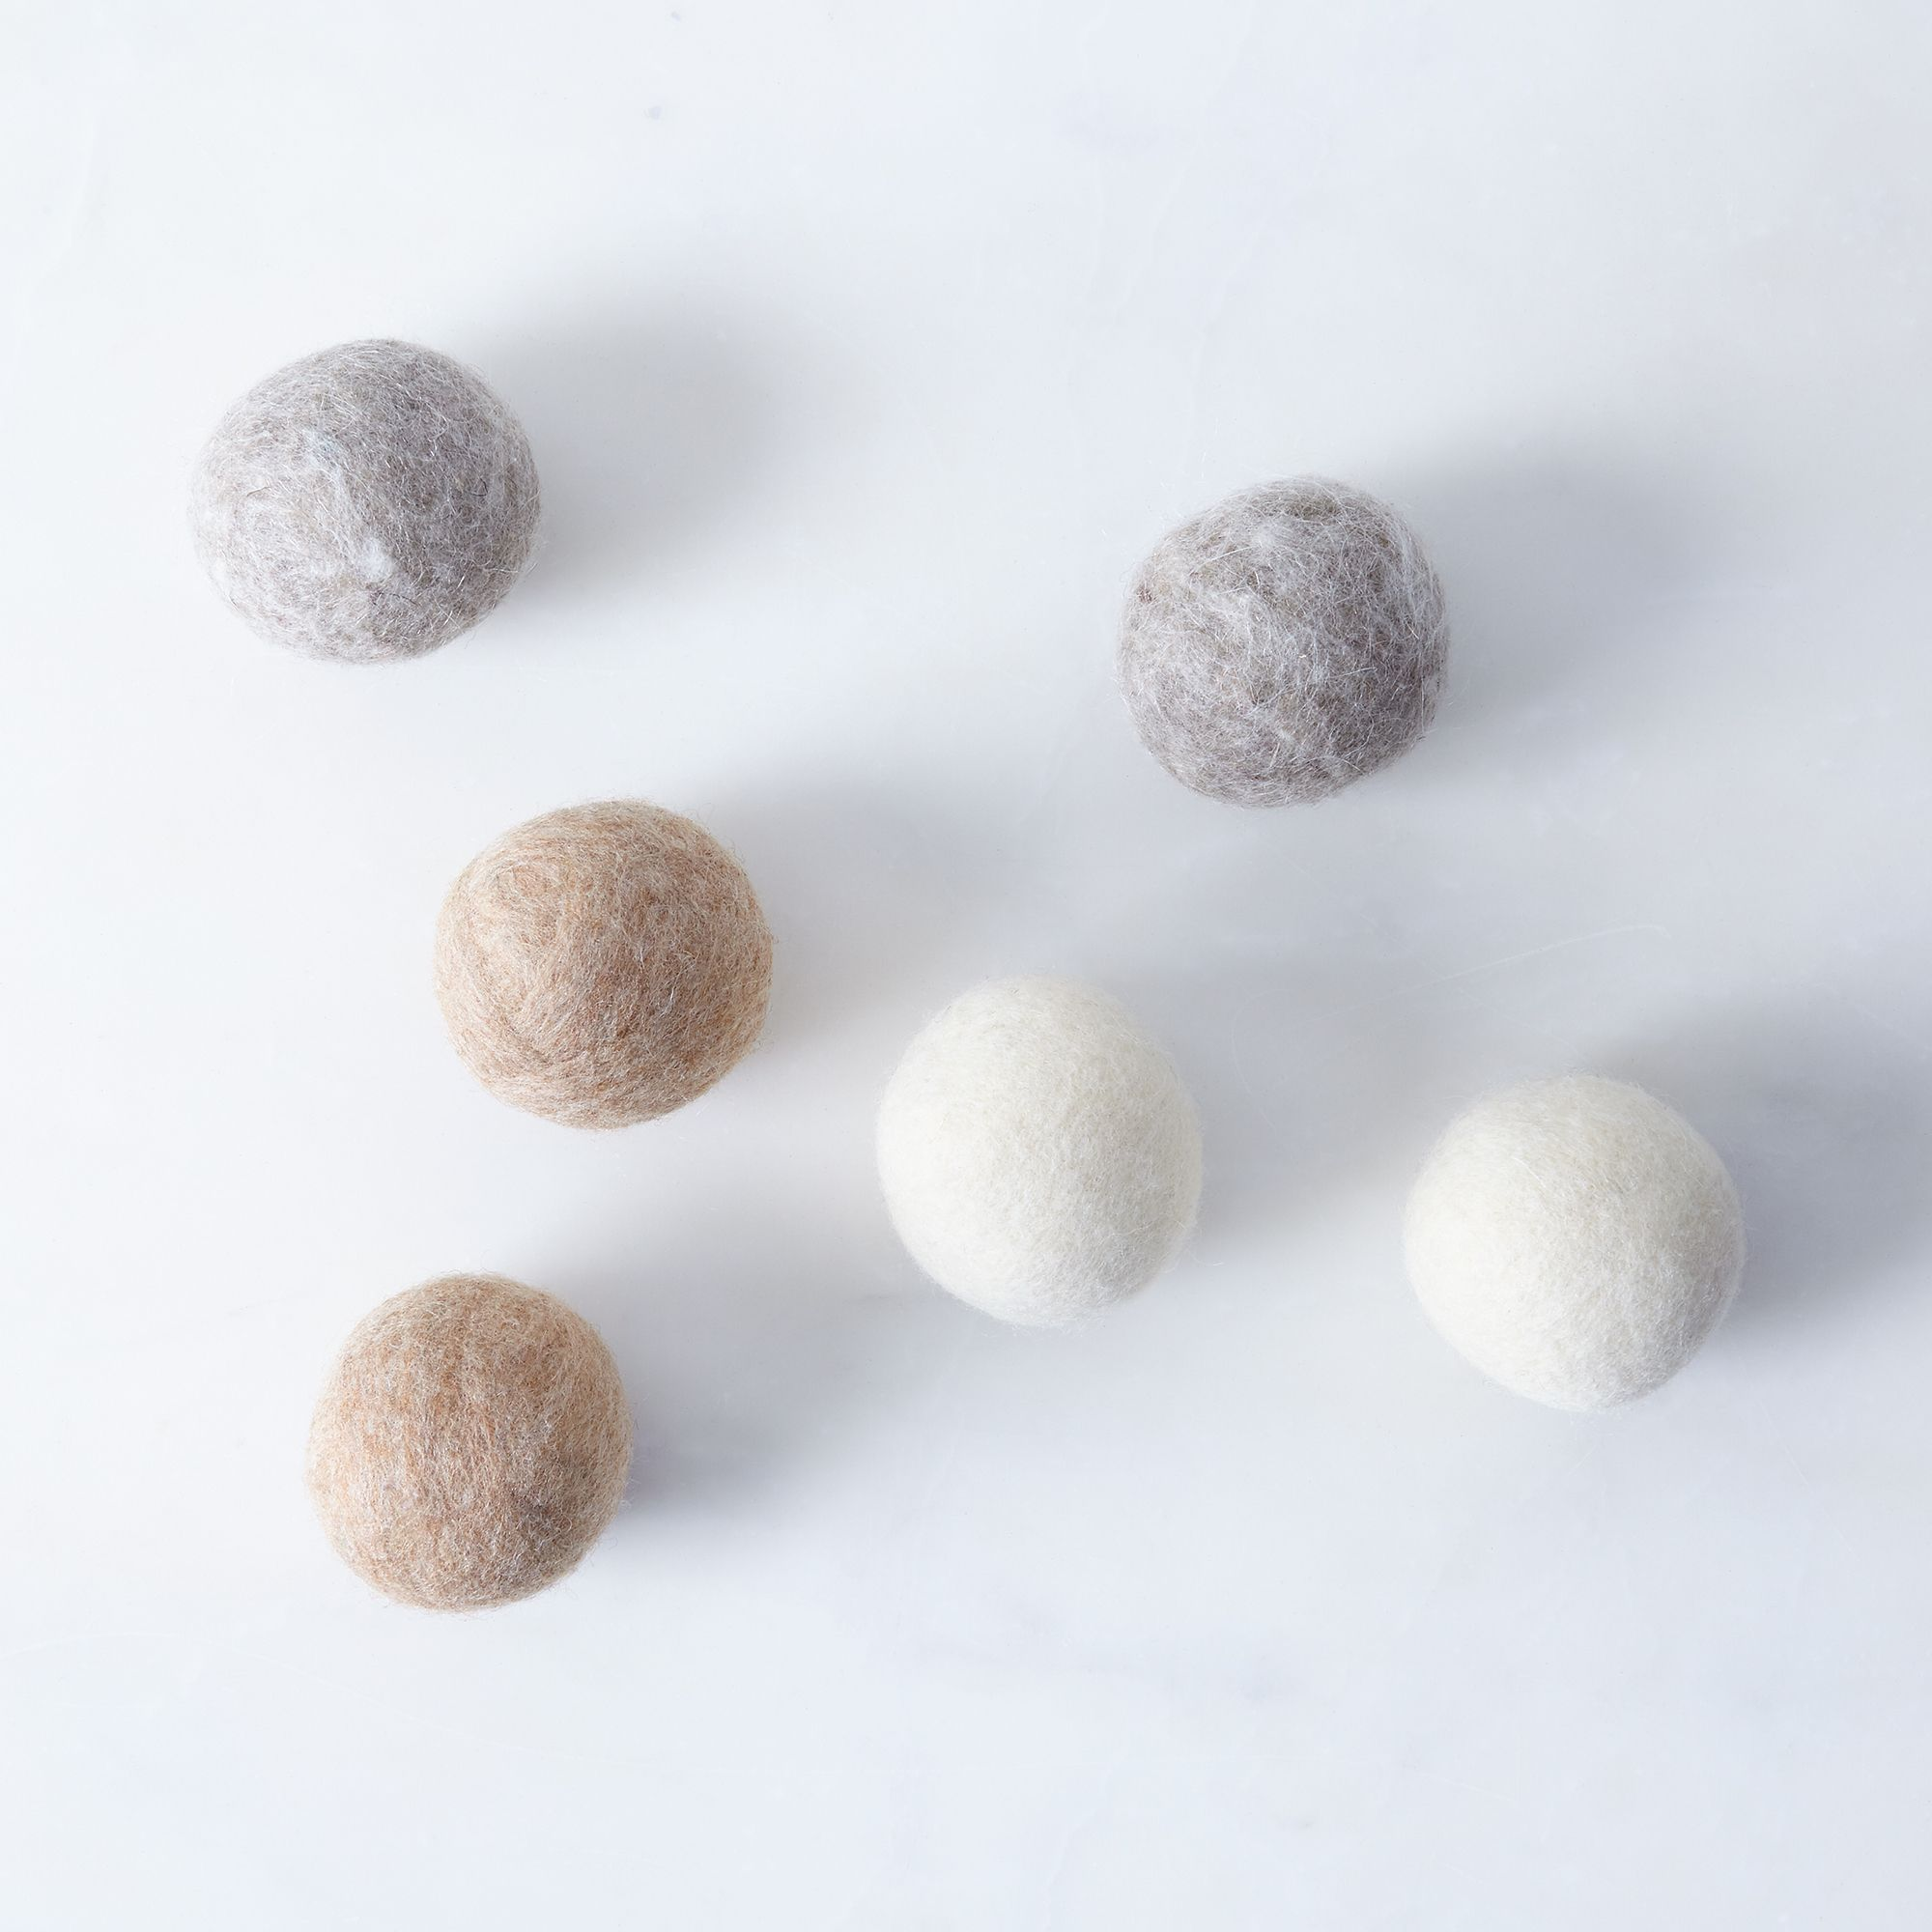 6b5bda1f c820 4ca5 8f00 7bed878a635e  2016 0805 bog berry oatmeal wool dryer balls set of 6 silo rocky luten 278